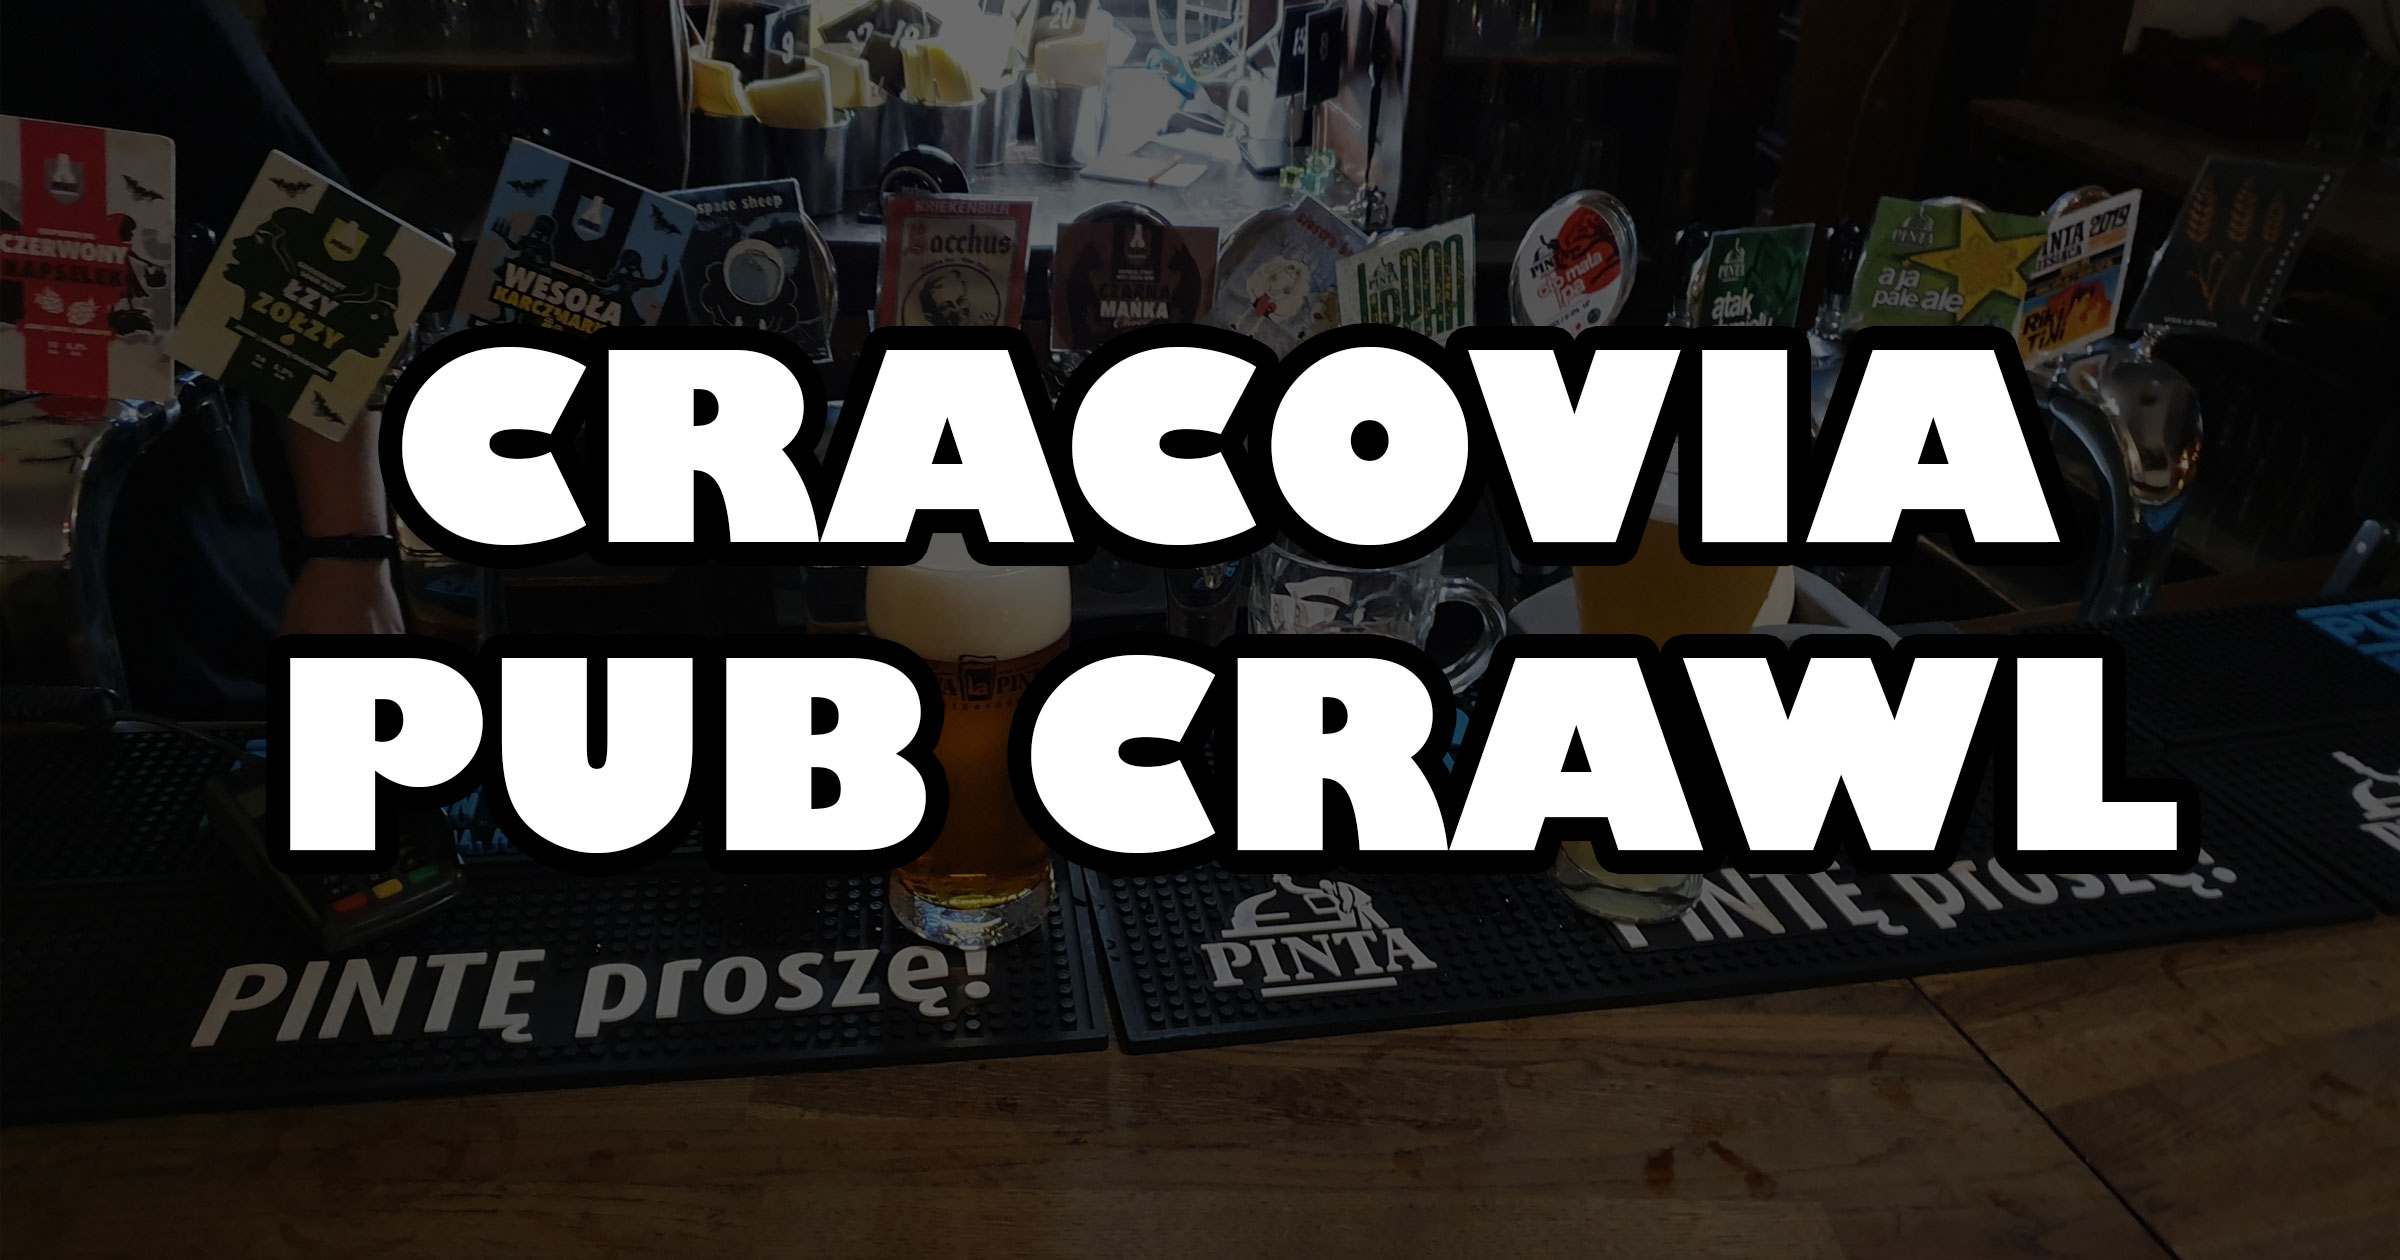 Cracovia pub crawl